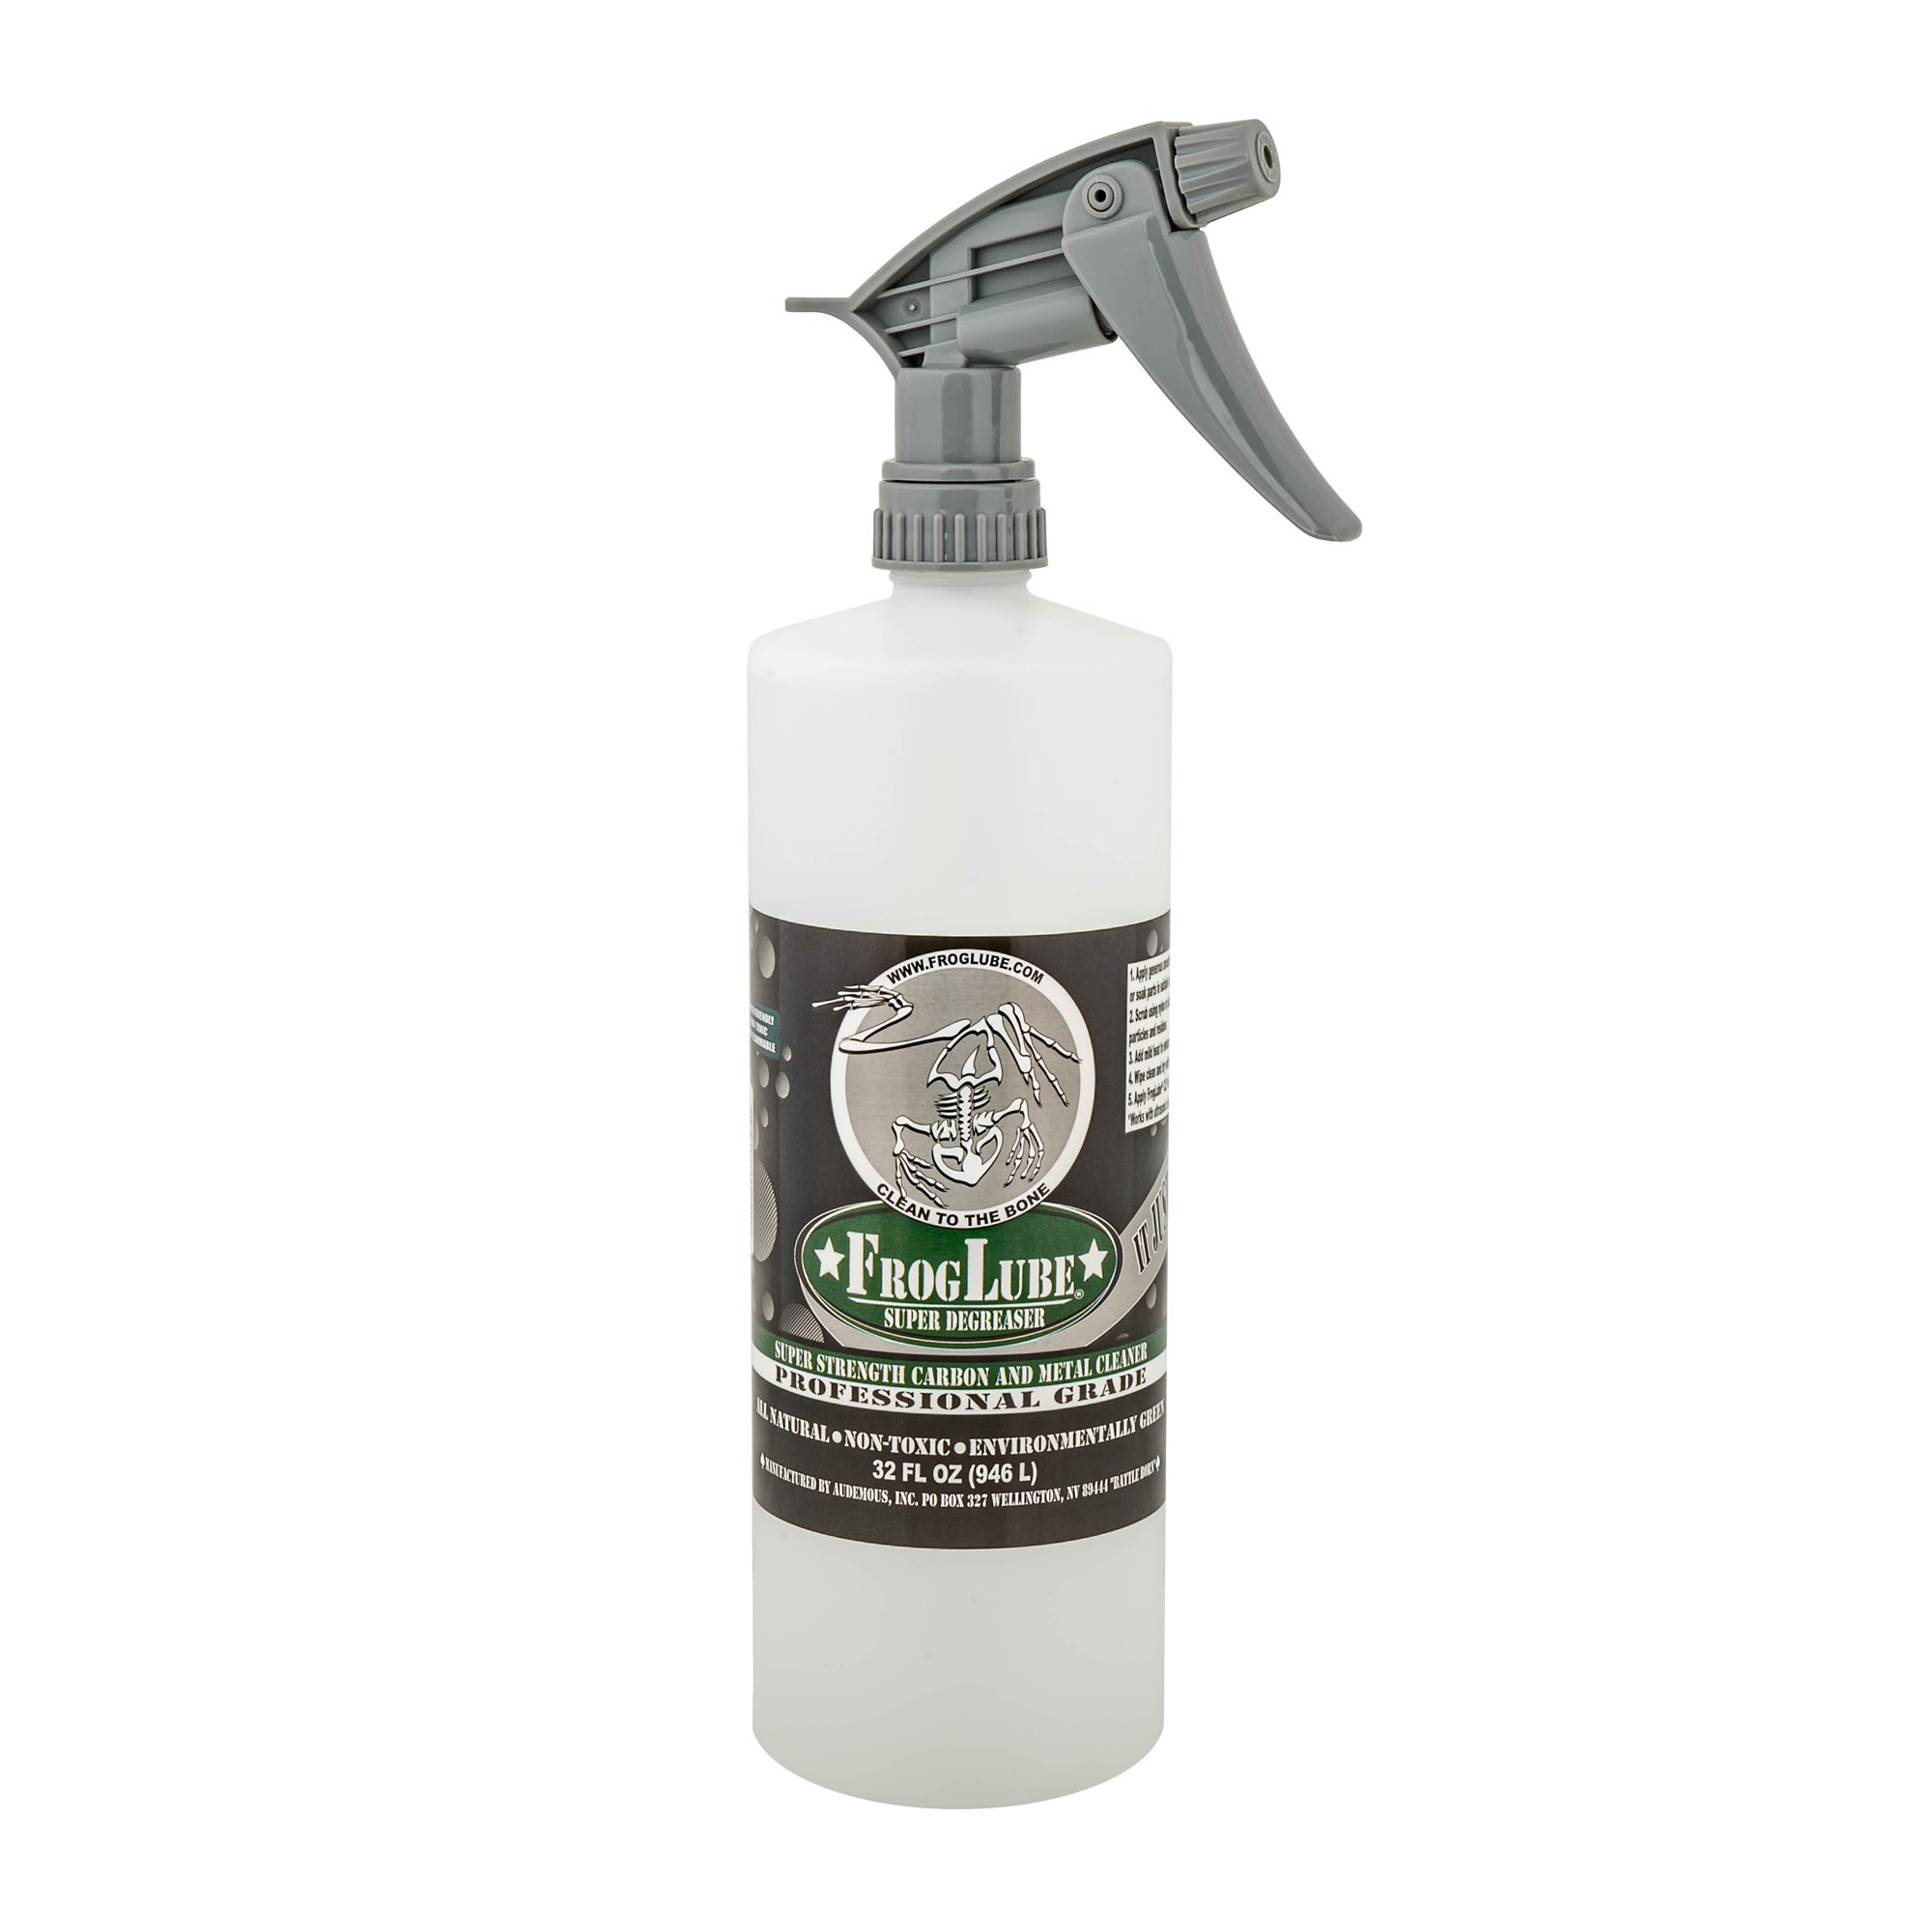 FrogLube Professional Grade Super Degreaser, 32 oz. Pump Spray by Frog Lube